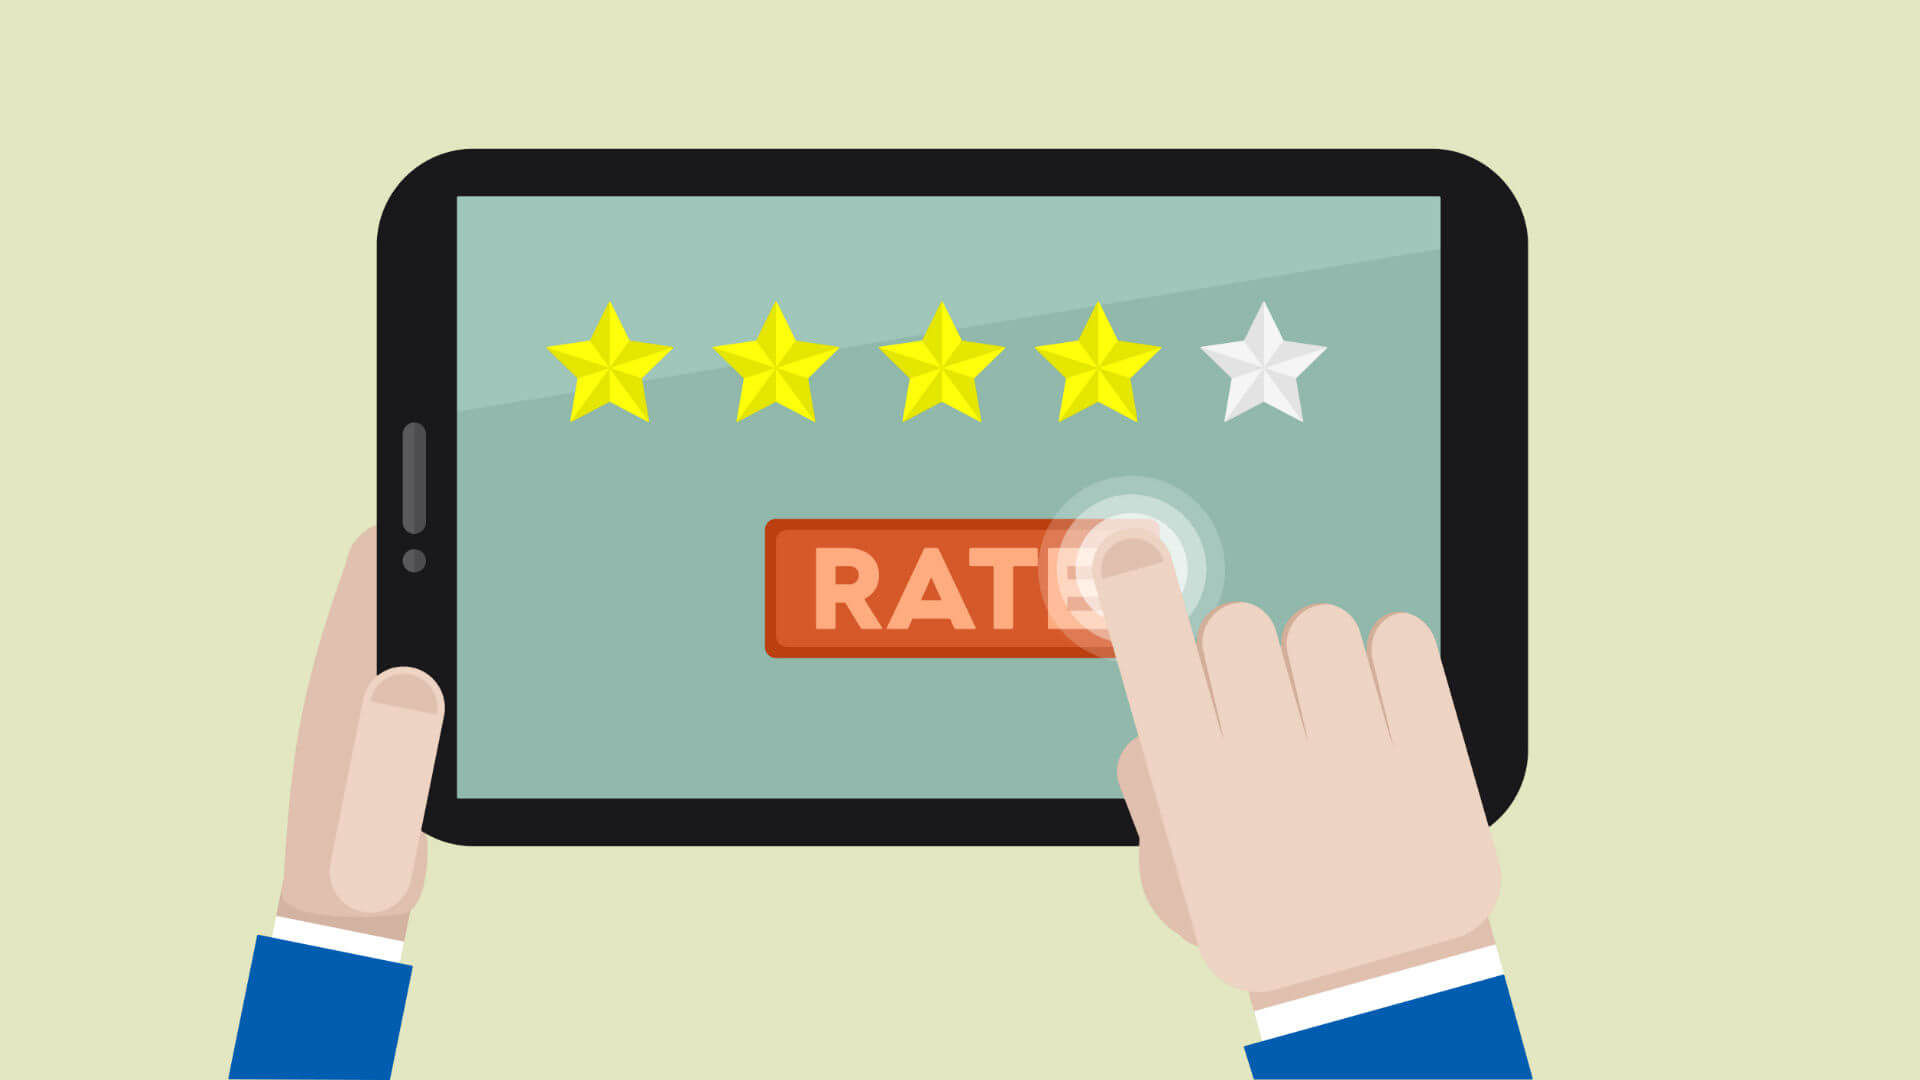 review-rating-tablet-ss-1920